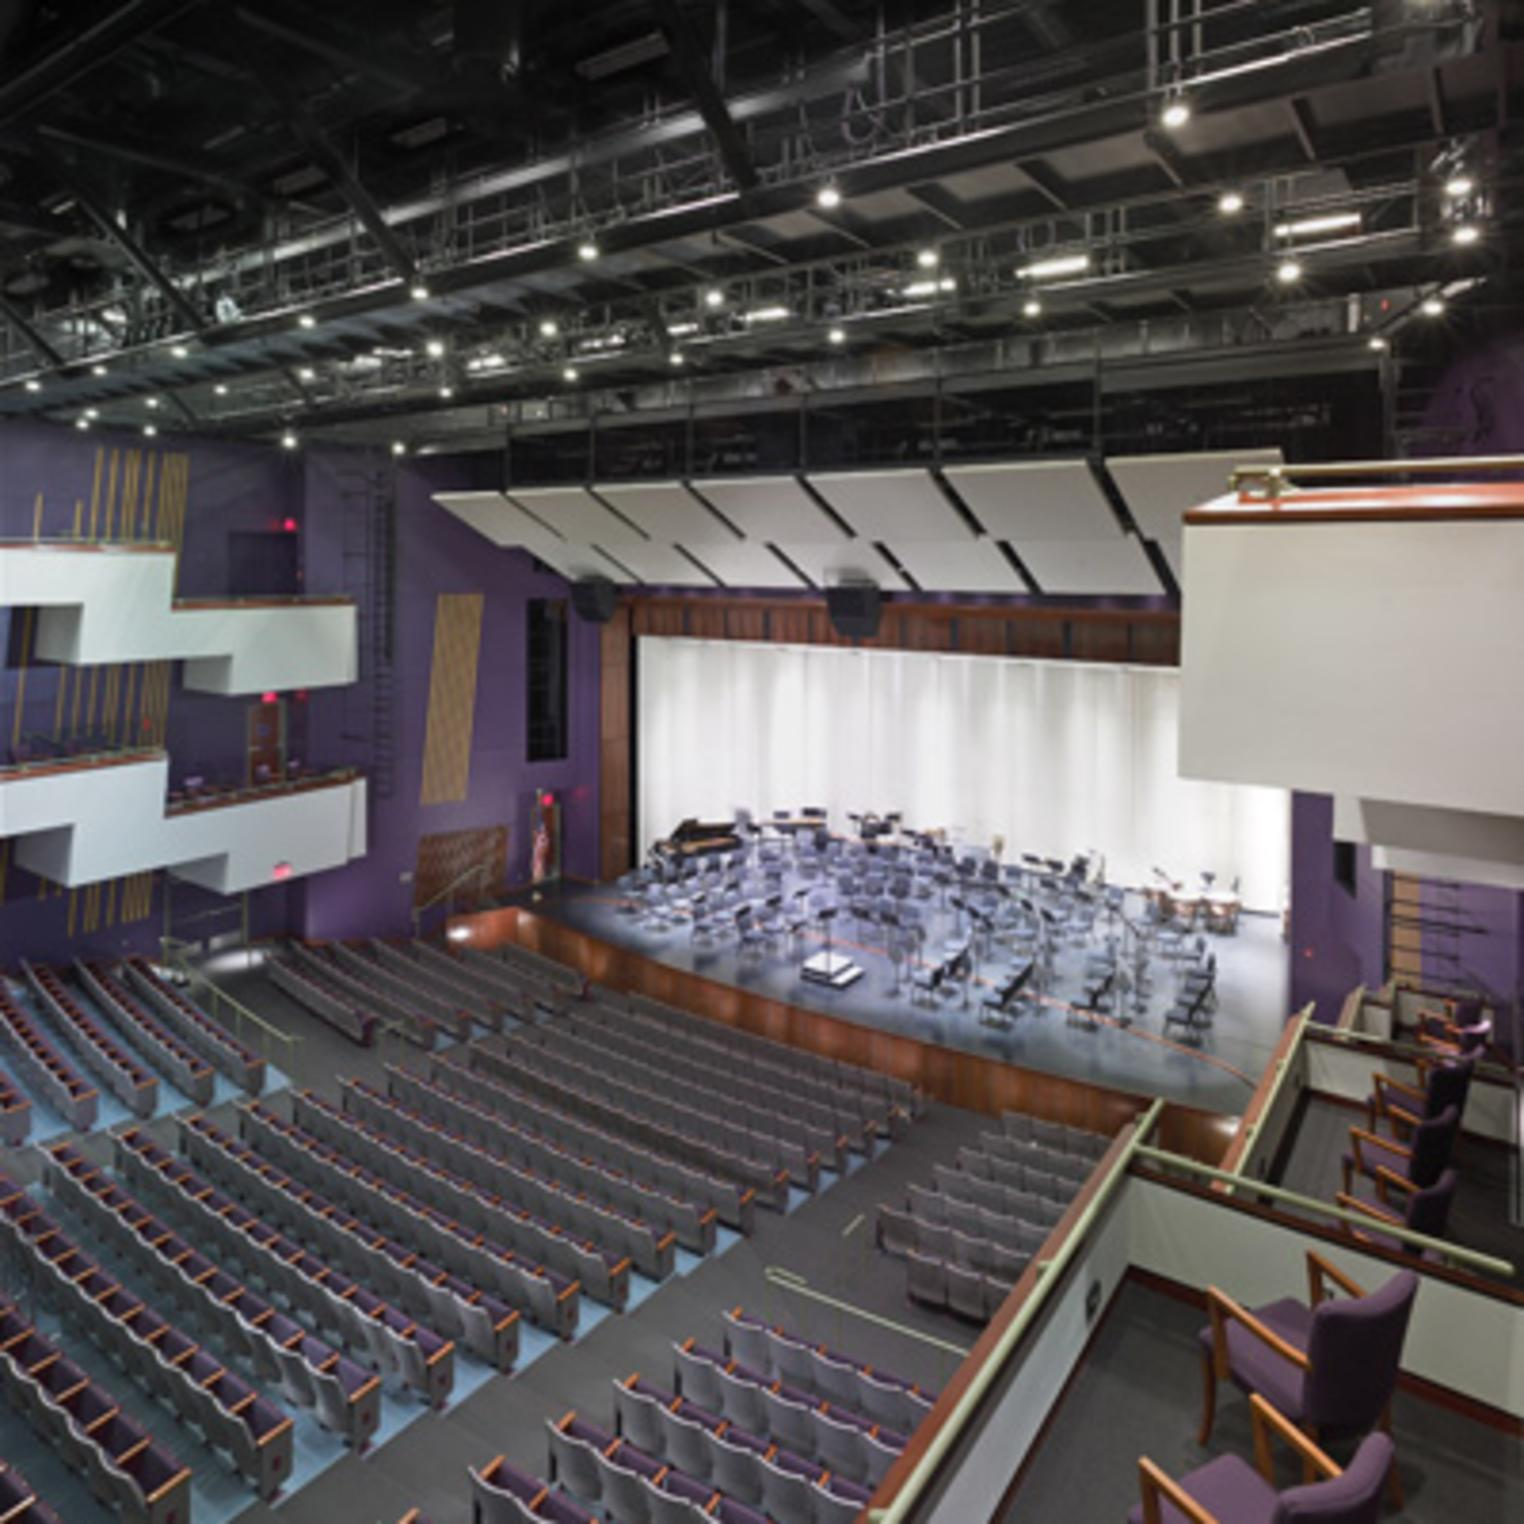 H. Ric Luhrs Performing Arts Center